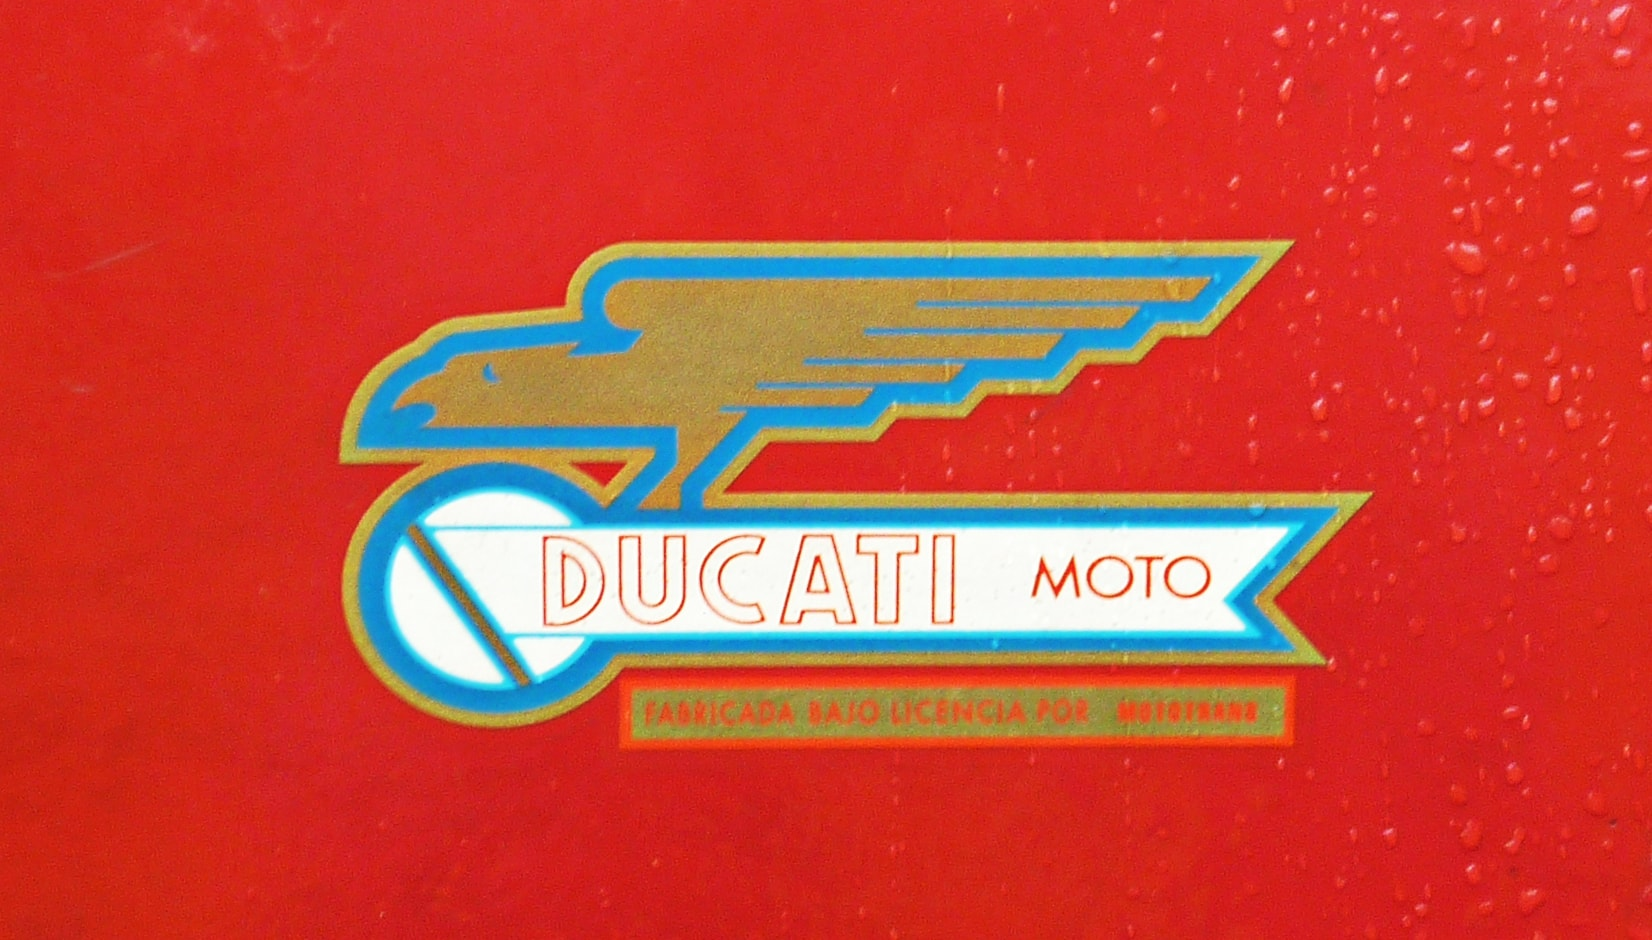 Owners Honda Com >> Ducati Logo: History, Meaning | Motorcycle Brands ...